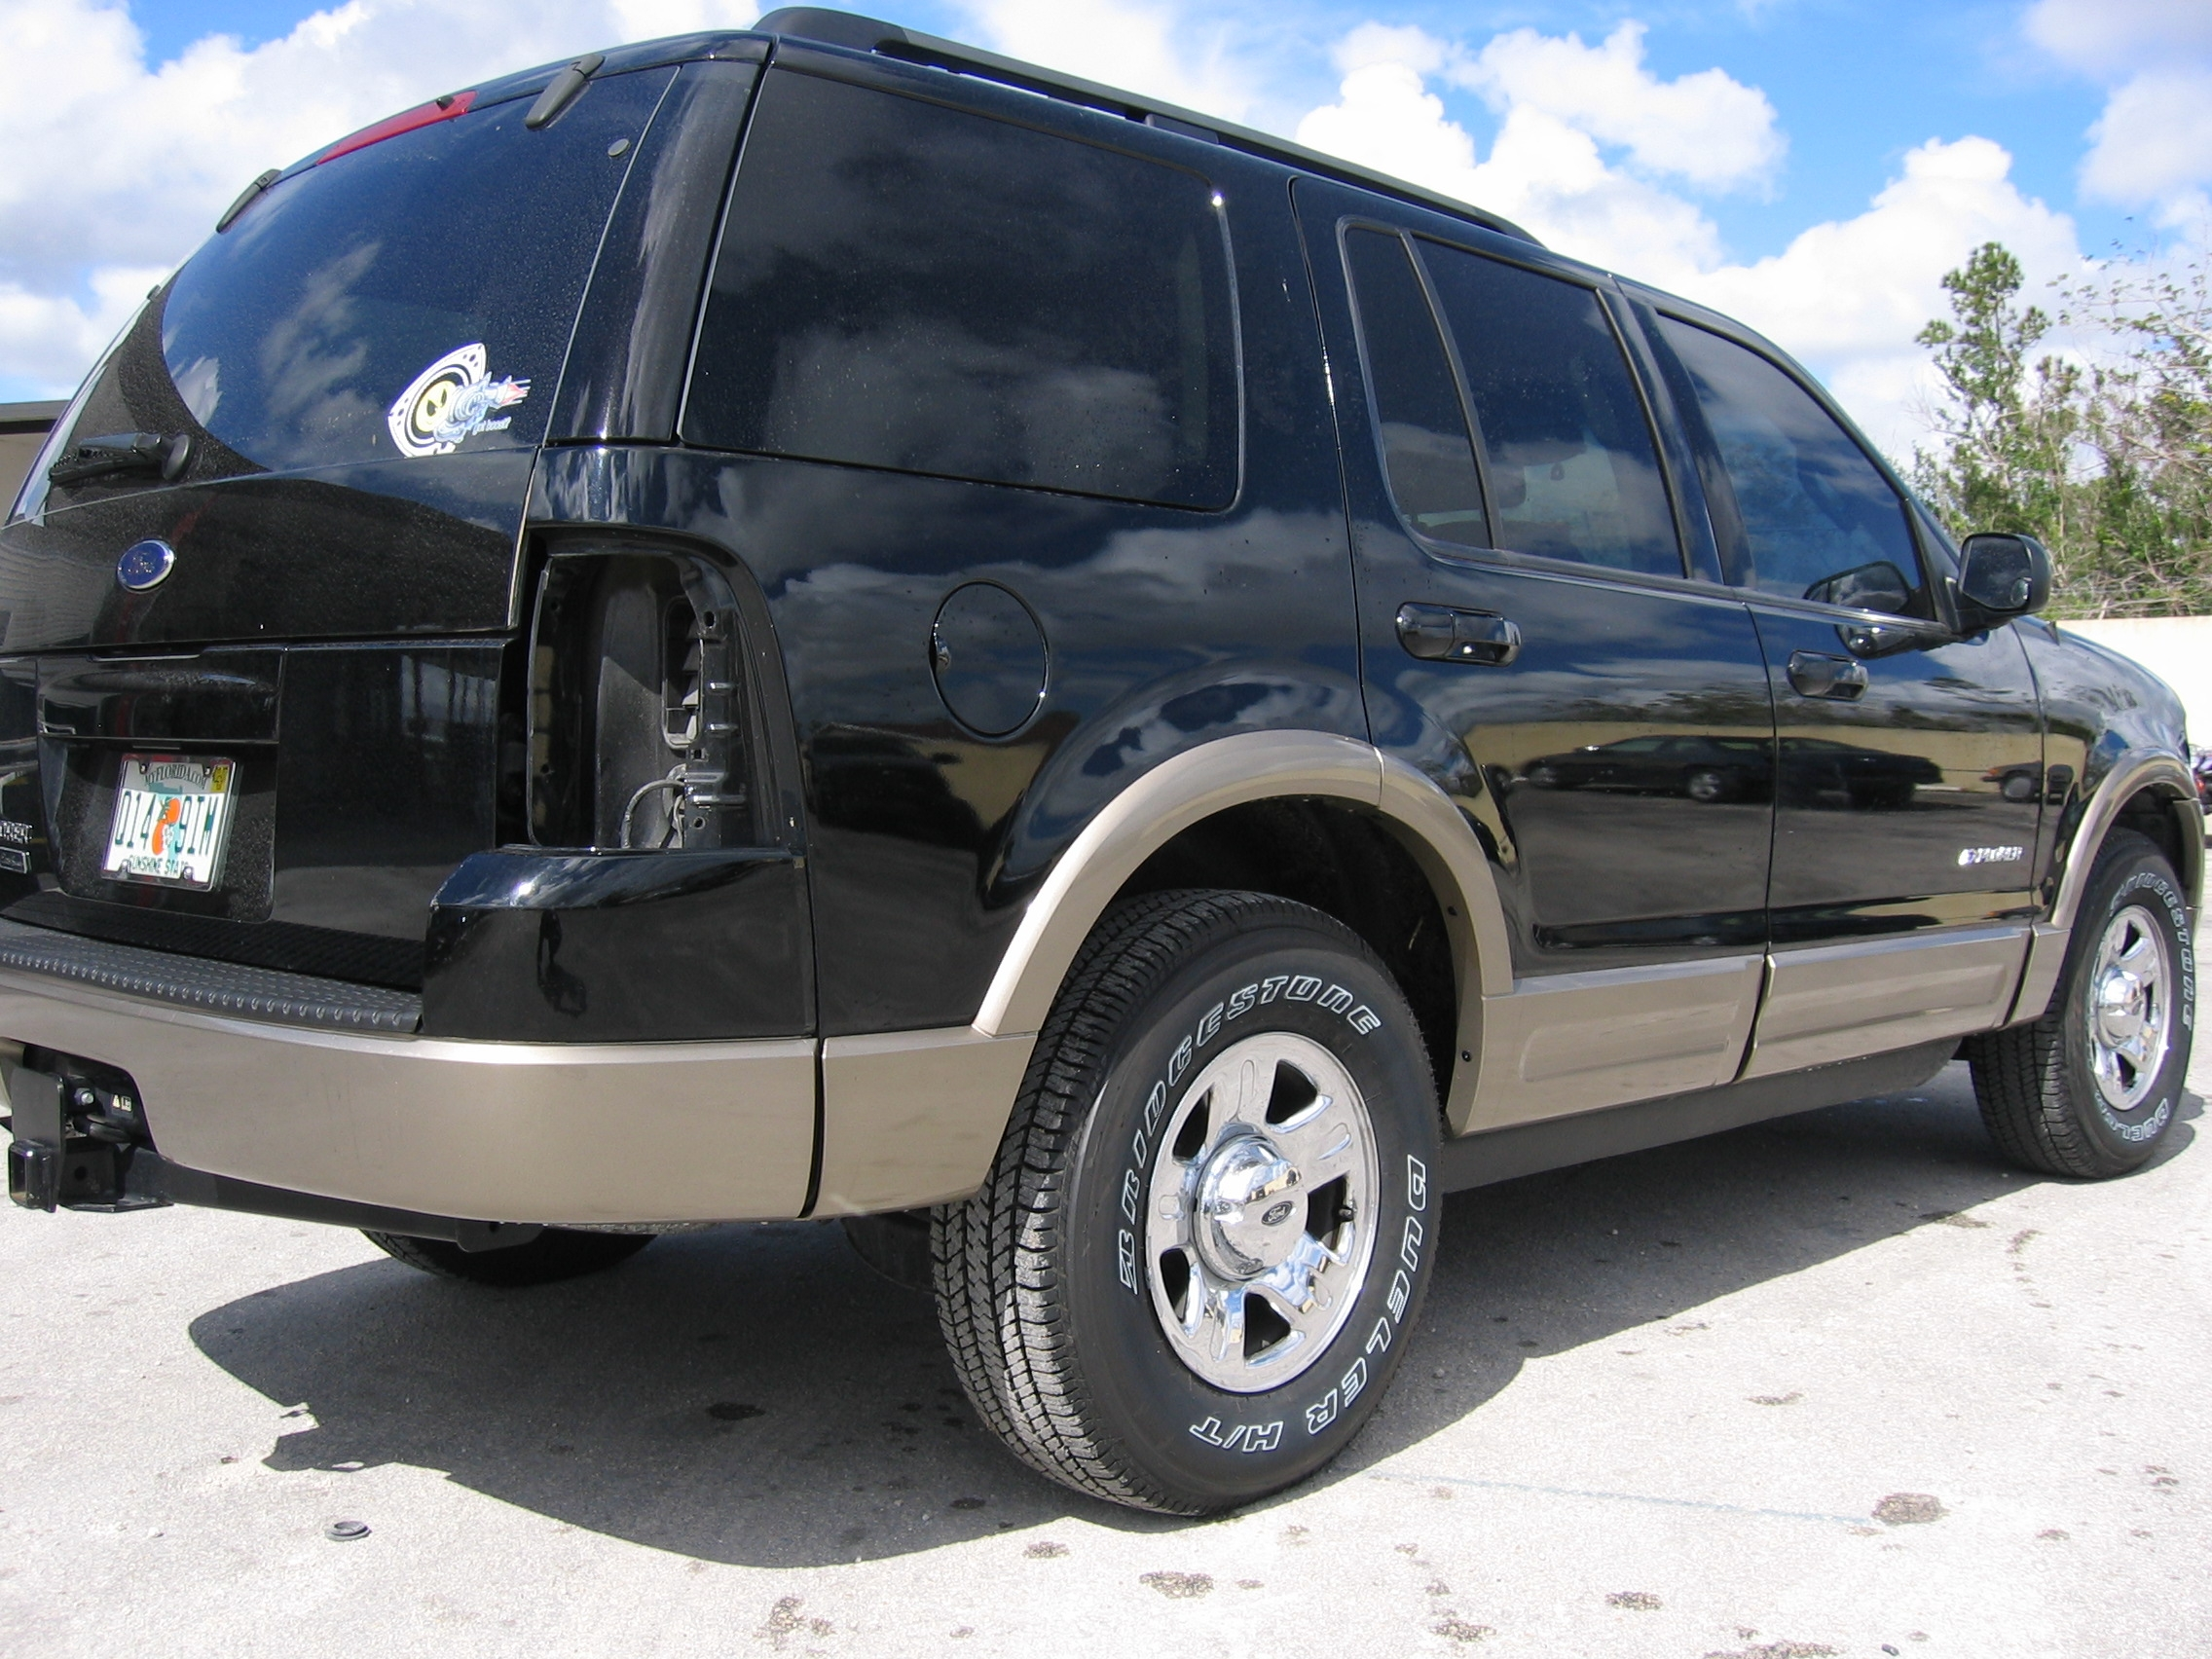 airkolors 2002 Ford Explorer 14339341